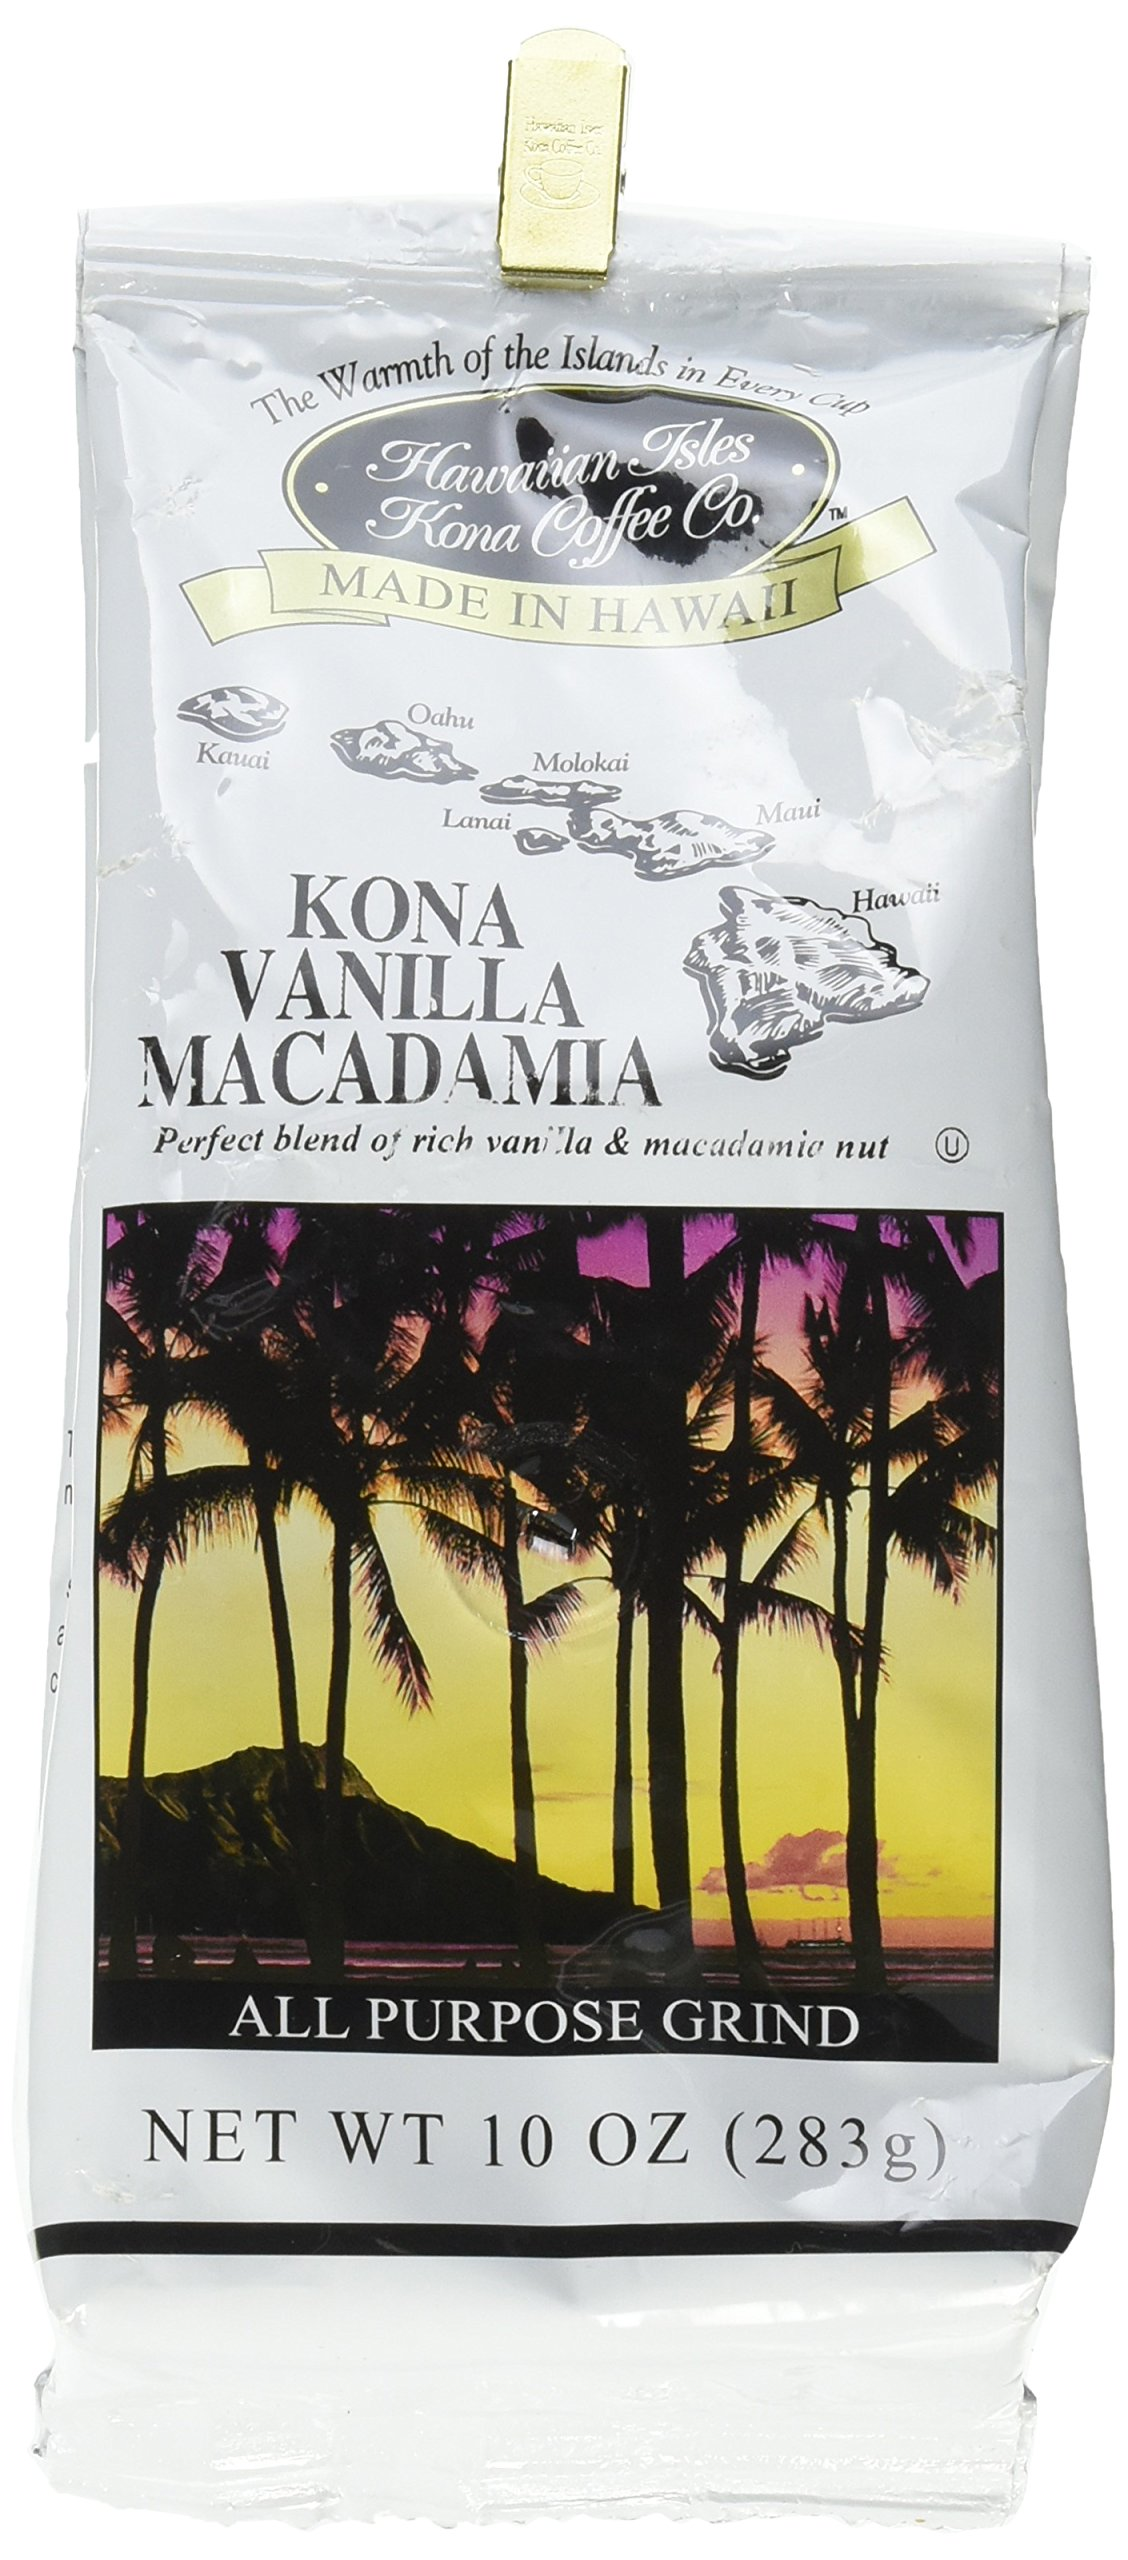 Hawaiian Isles Kona Coffee Co. Kona Vanilla Macadamia Nut Ground Coffee, Medium Roast, 8 ounce bag